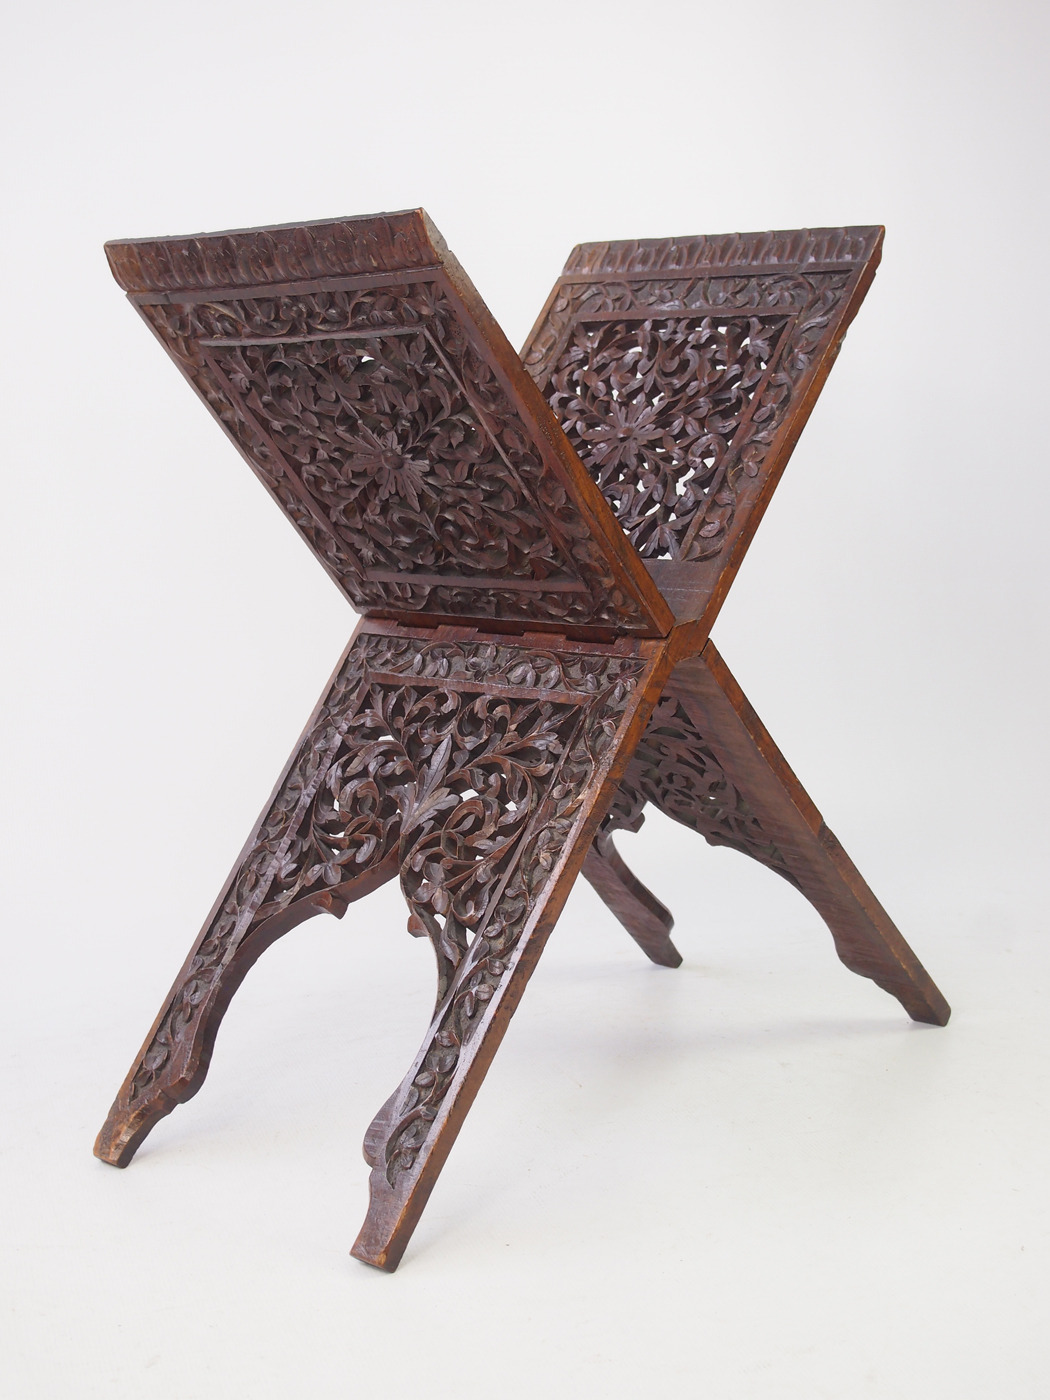 Antique Furniture Online India Beautiful Antique Anglo Indian Magazine Stand Quran Stand La